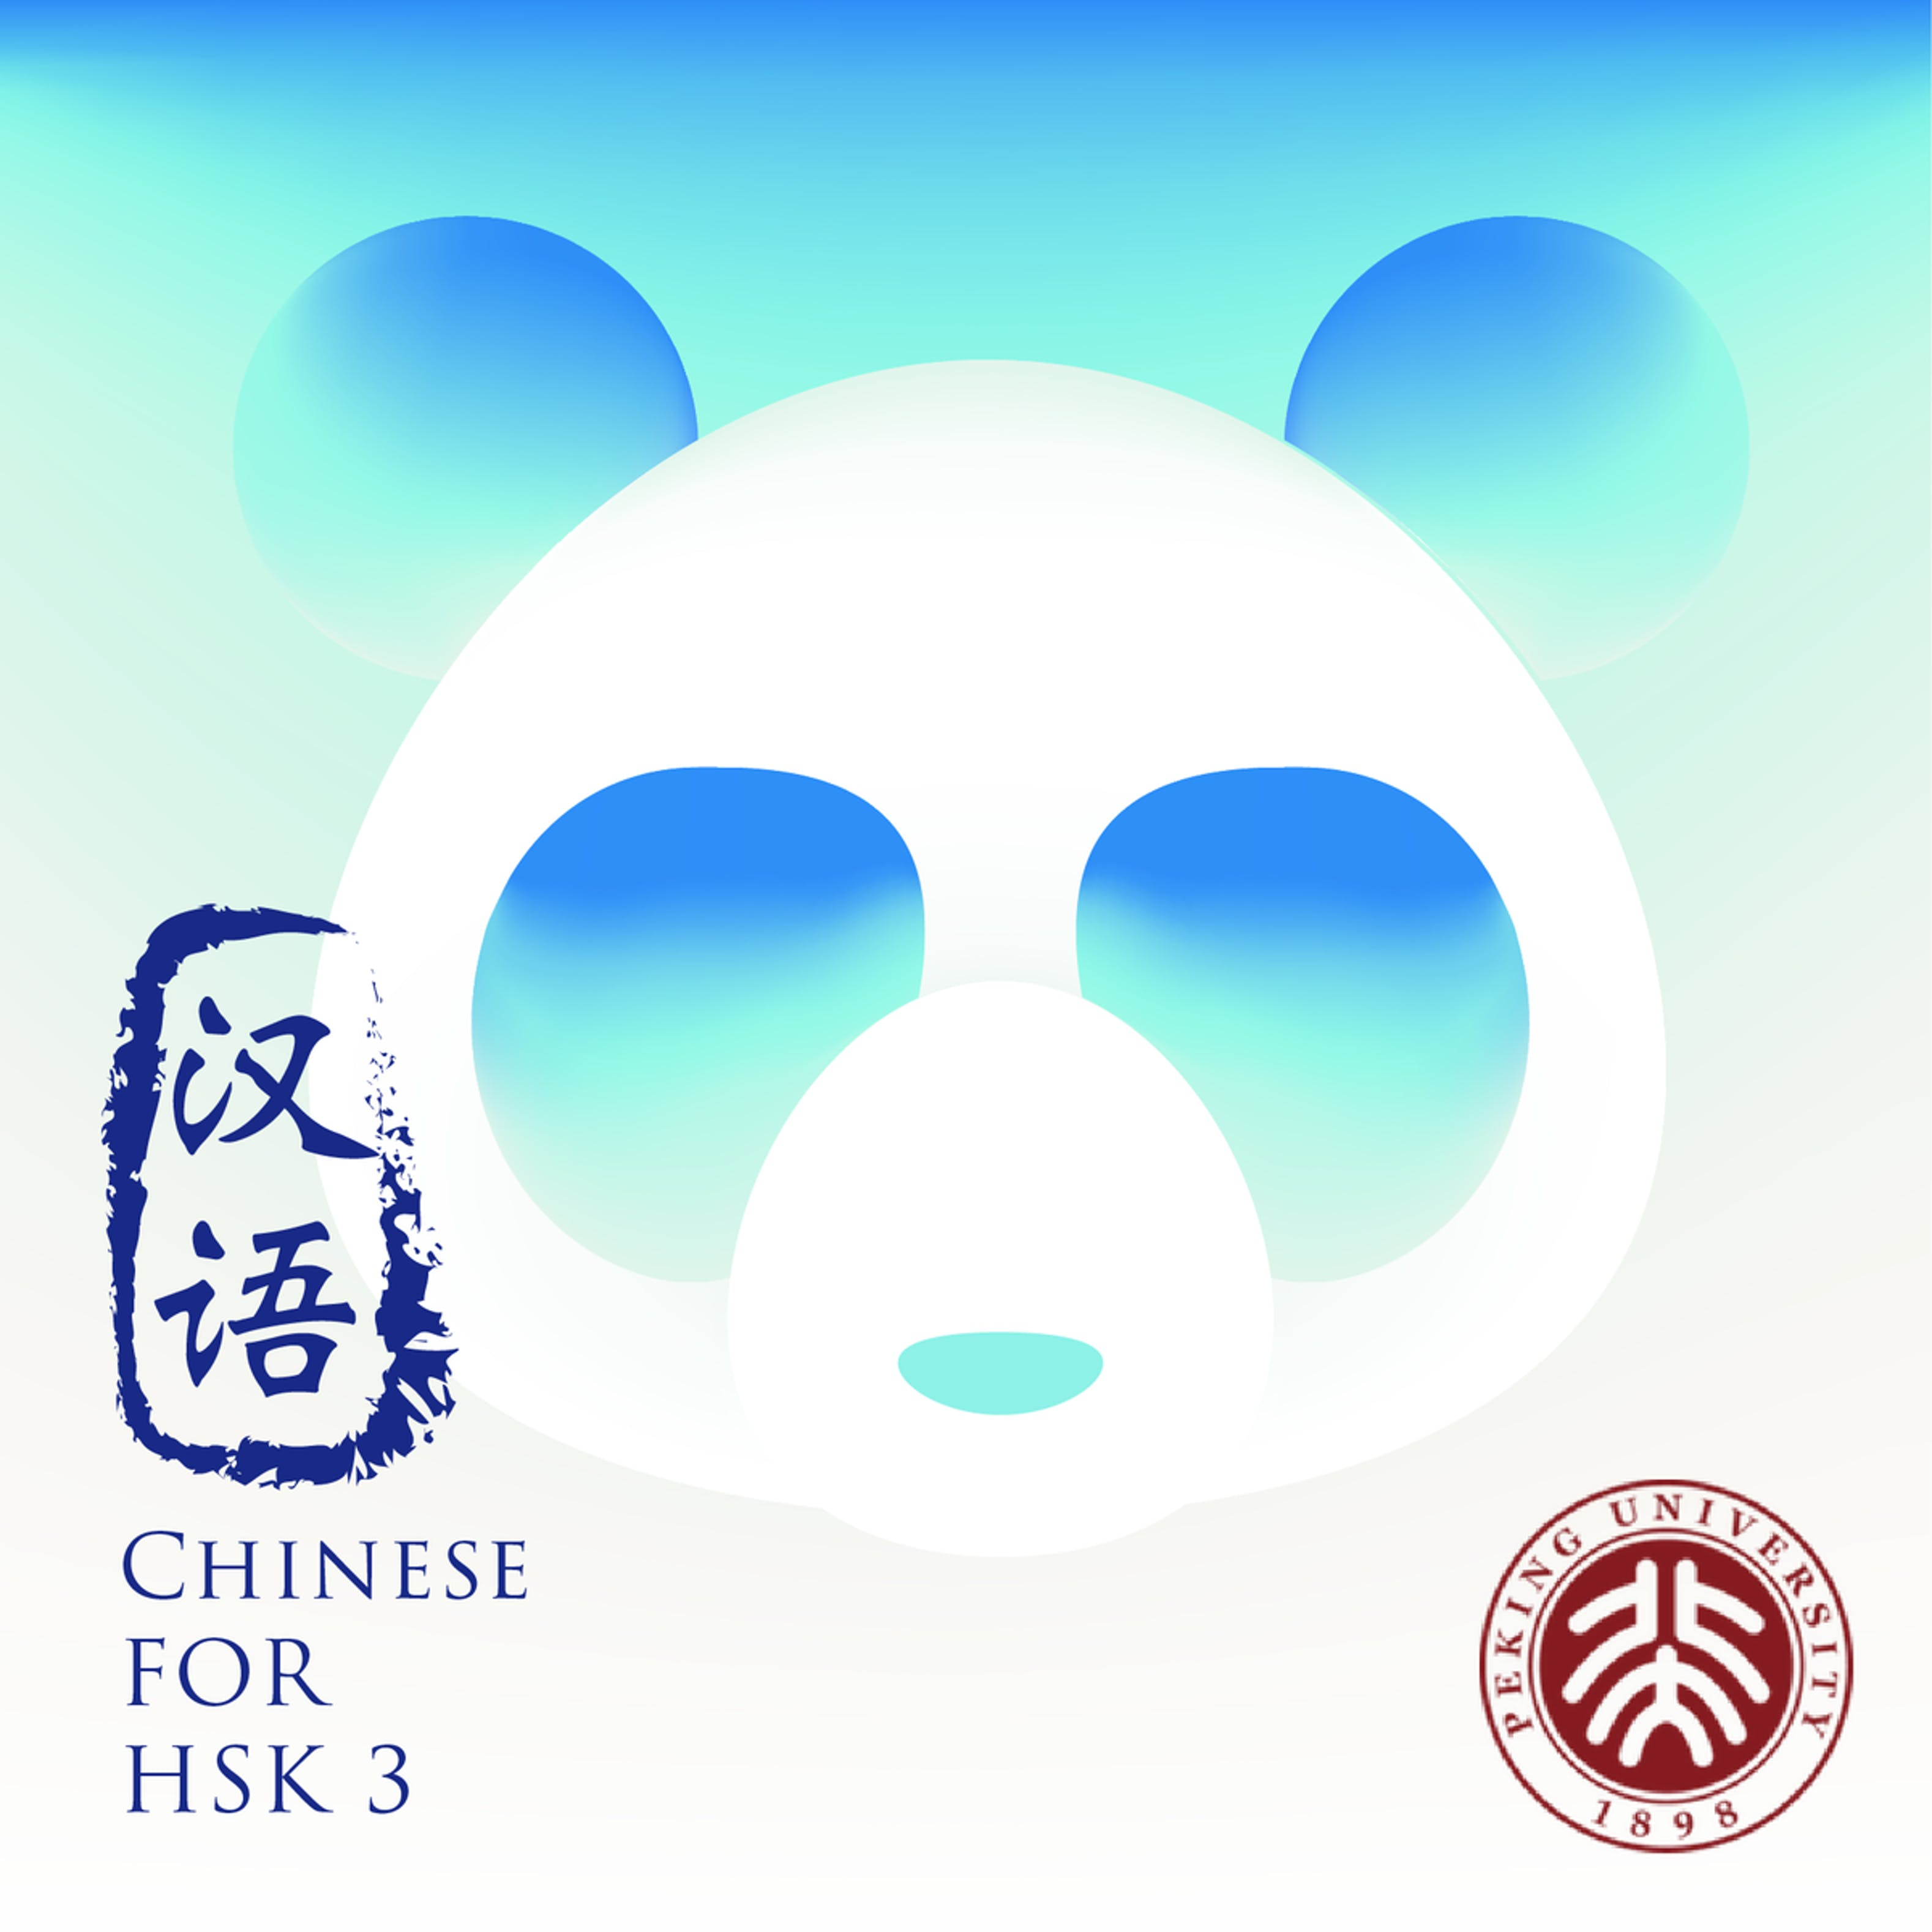 Chinese for HSK 3 PART II | Coursera